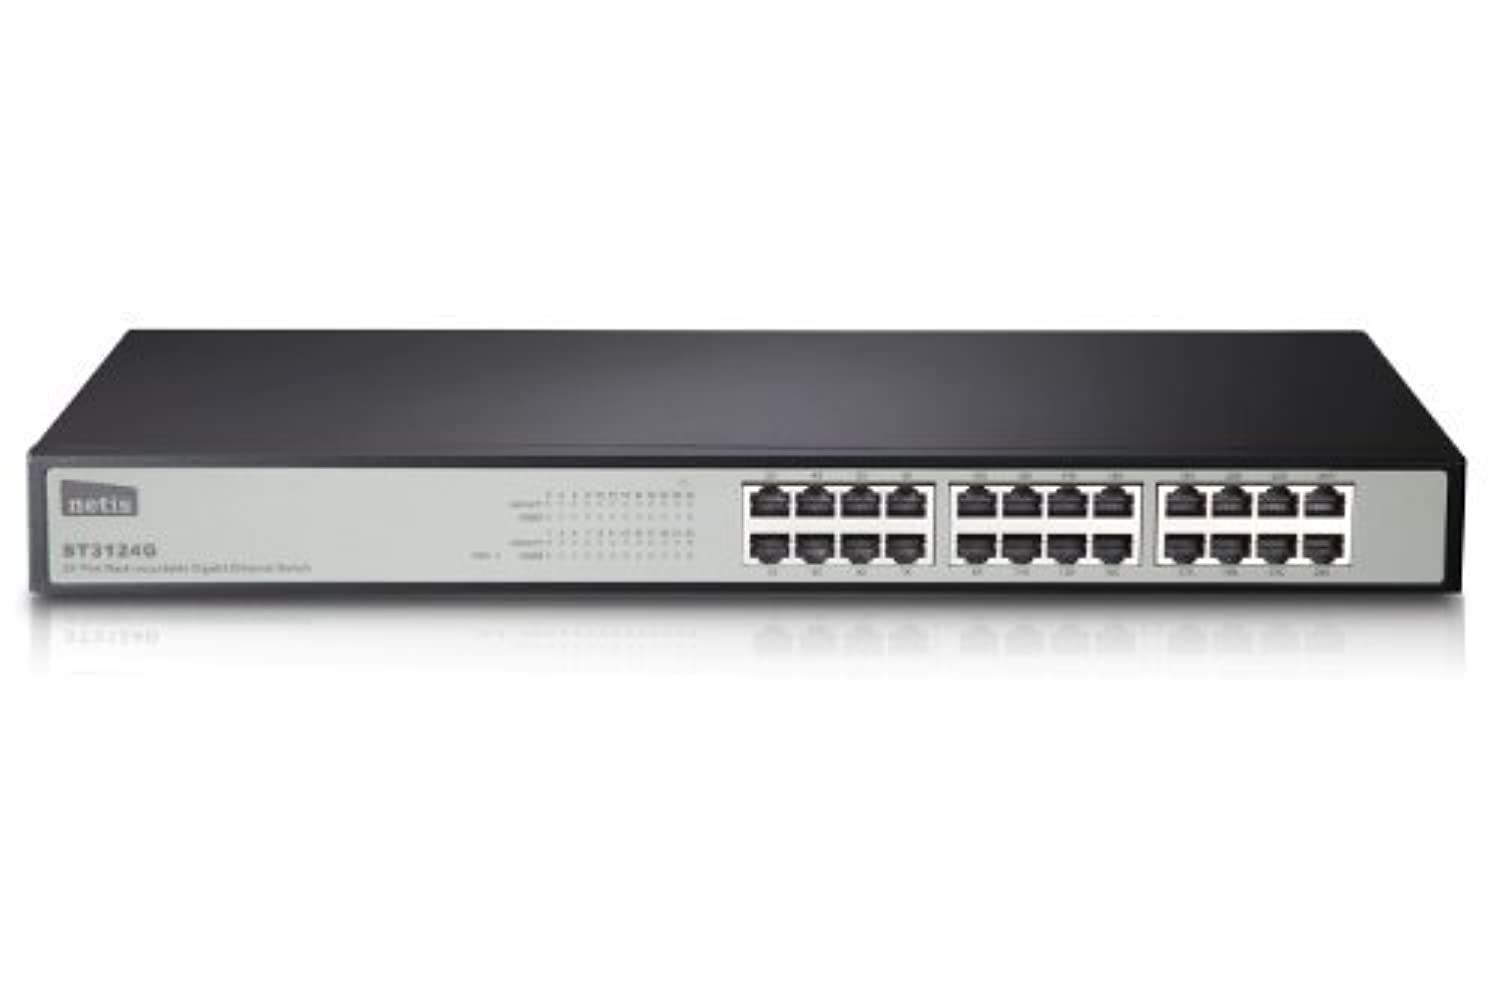 Netis ST3124G 24-Port 10/100/1000M Gigabit 19-inch Rackmountable Switch, Auto-negotiation, P&P, Mounting Kits Included [並行輸入品]